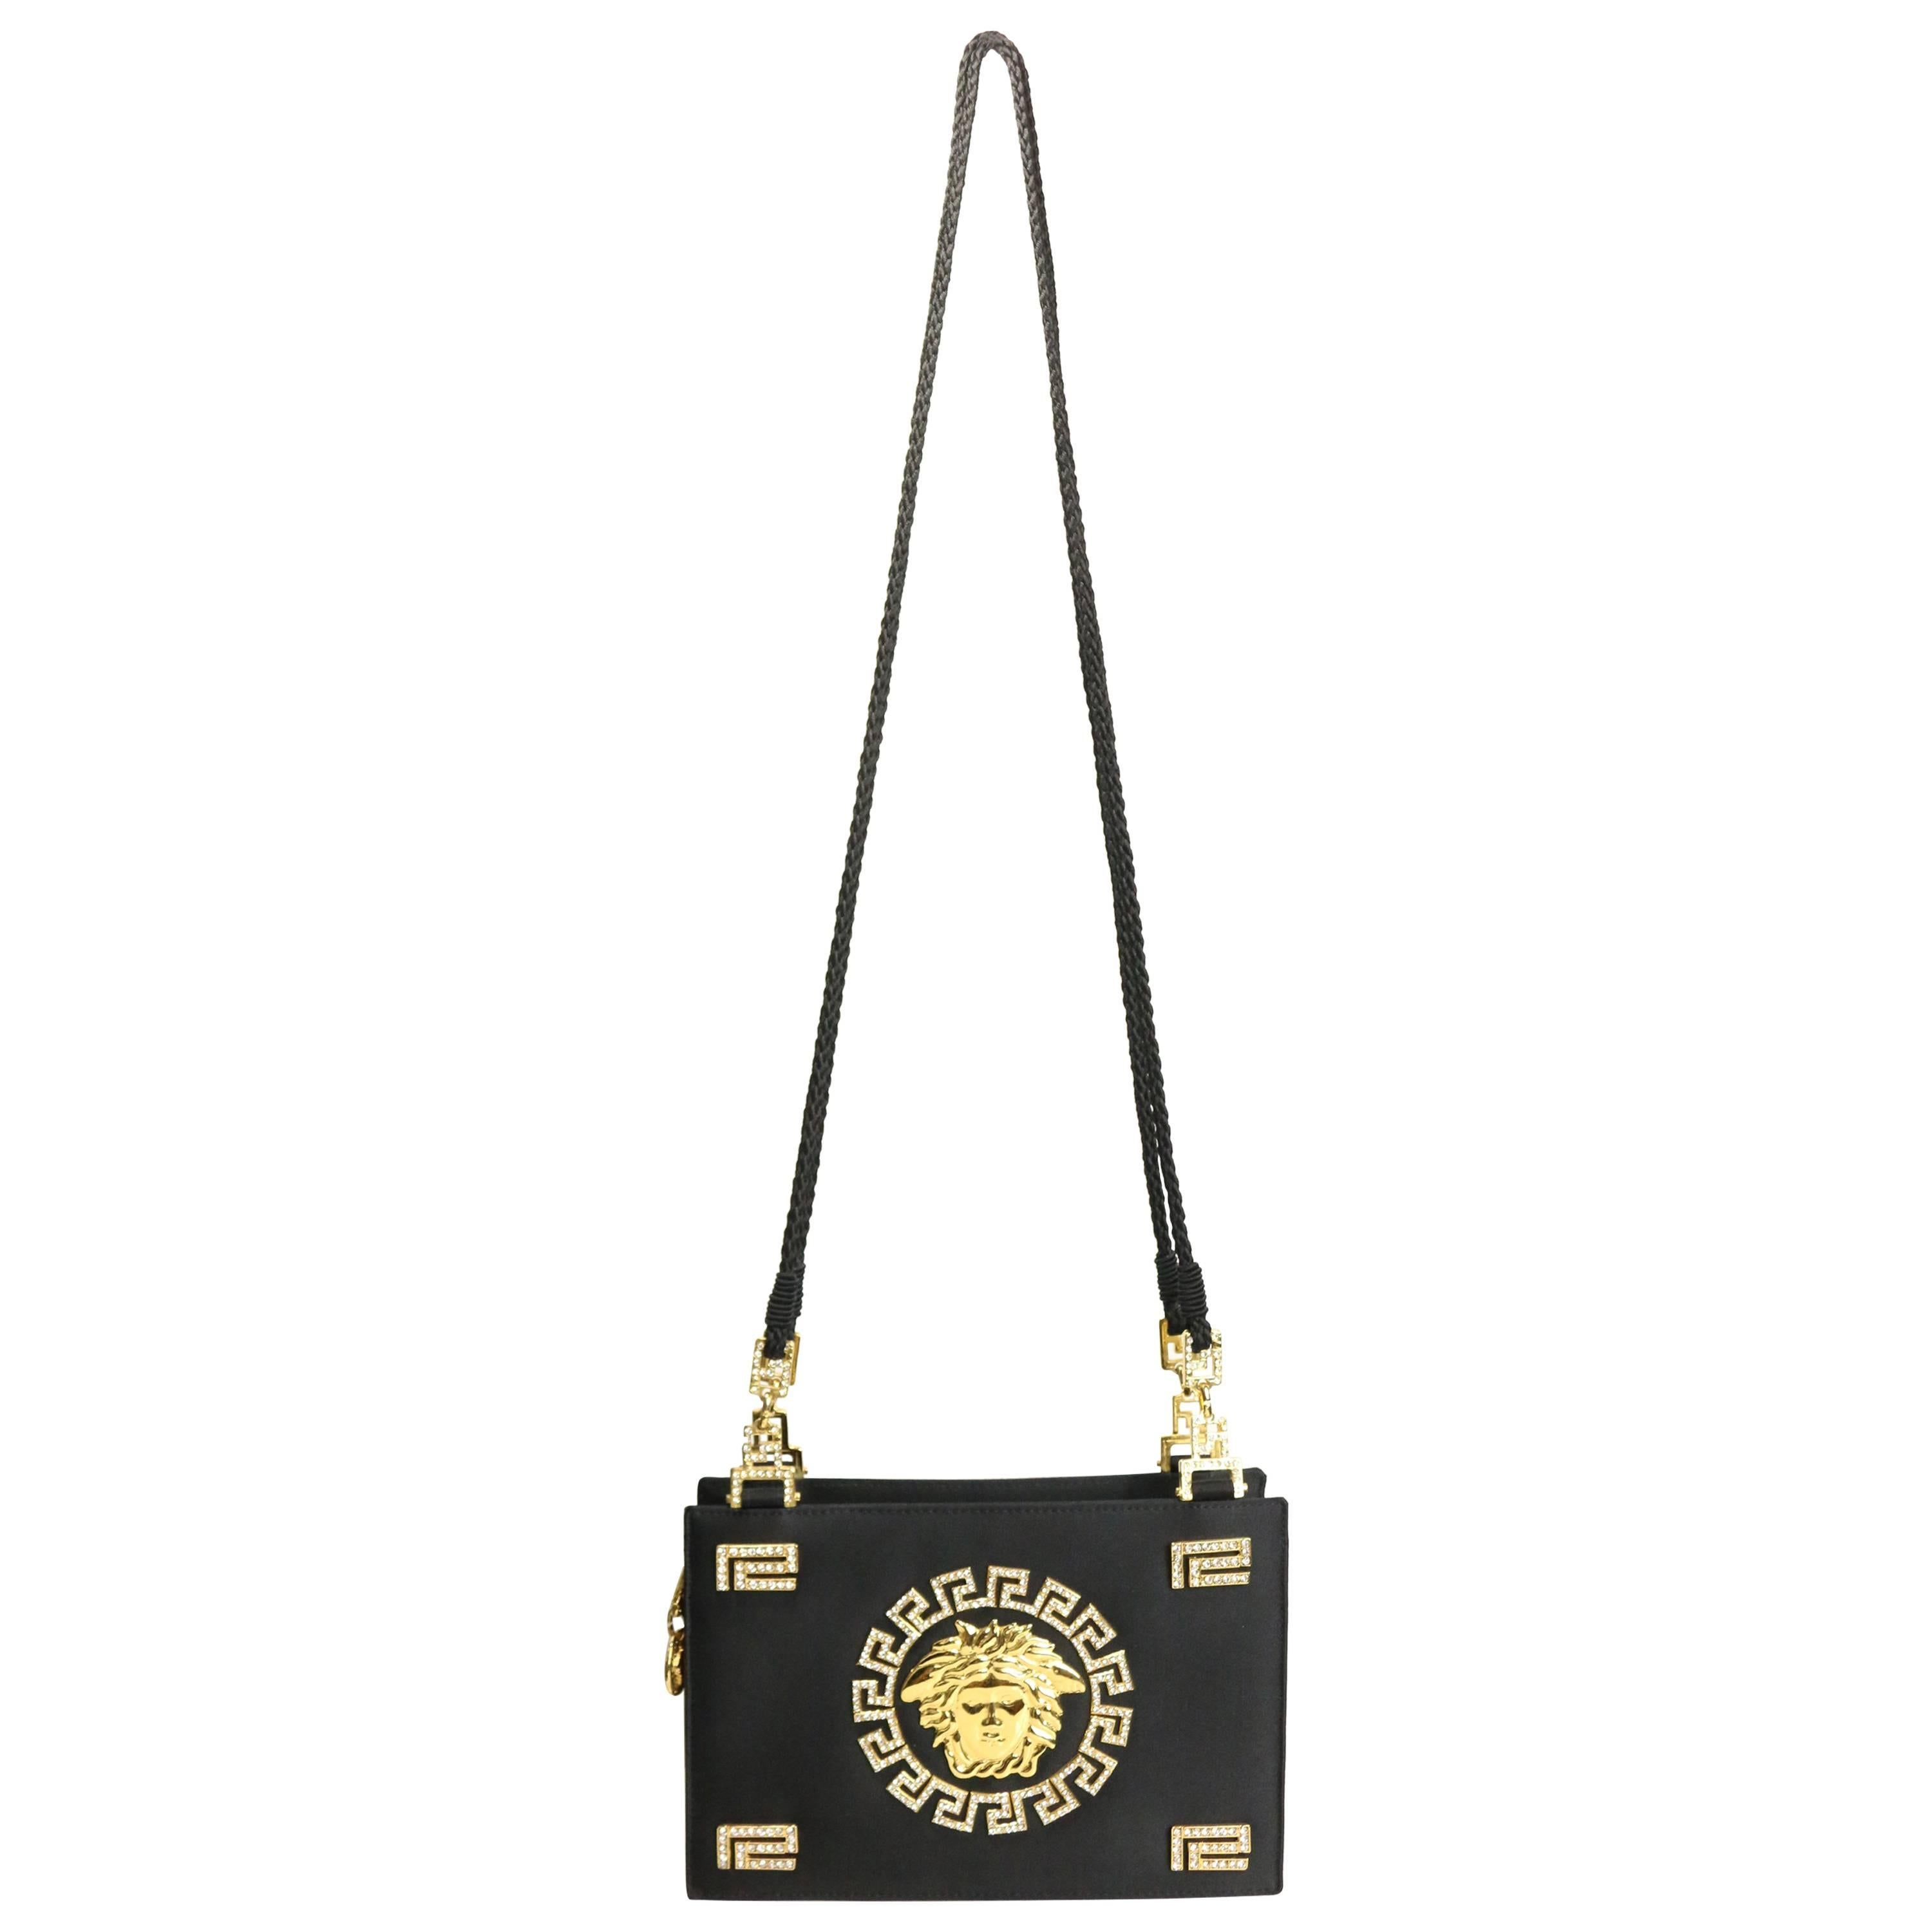 1a3cbc8a72 Gianni Versace Black Croc Leather flap Shoulder Bag For Sale at 1stdibs